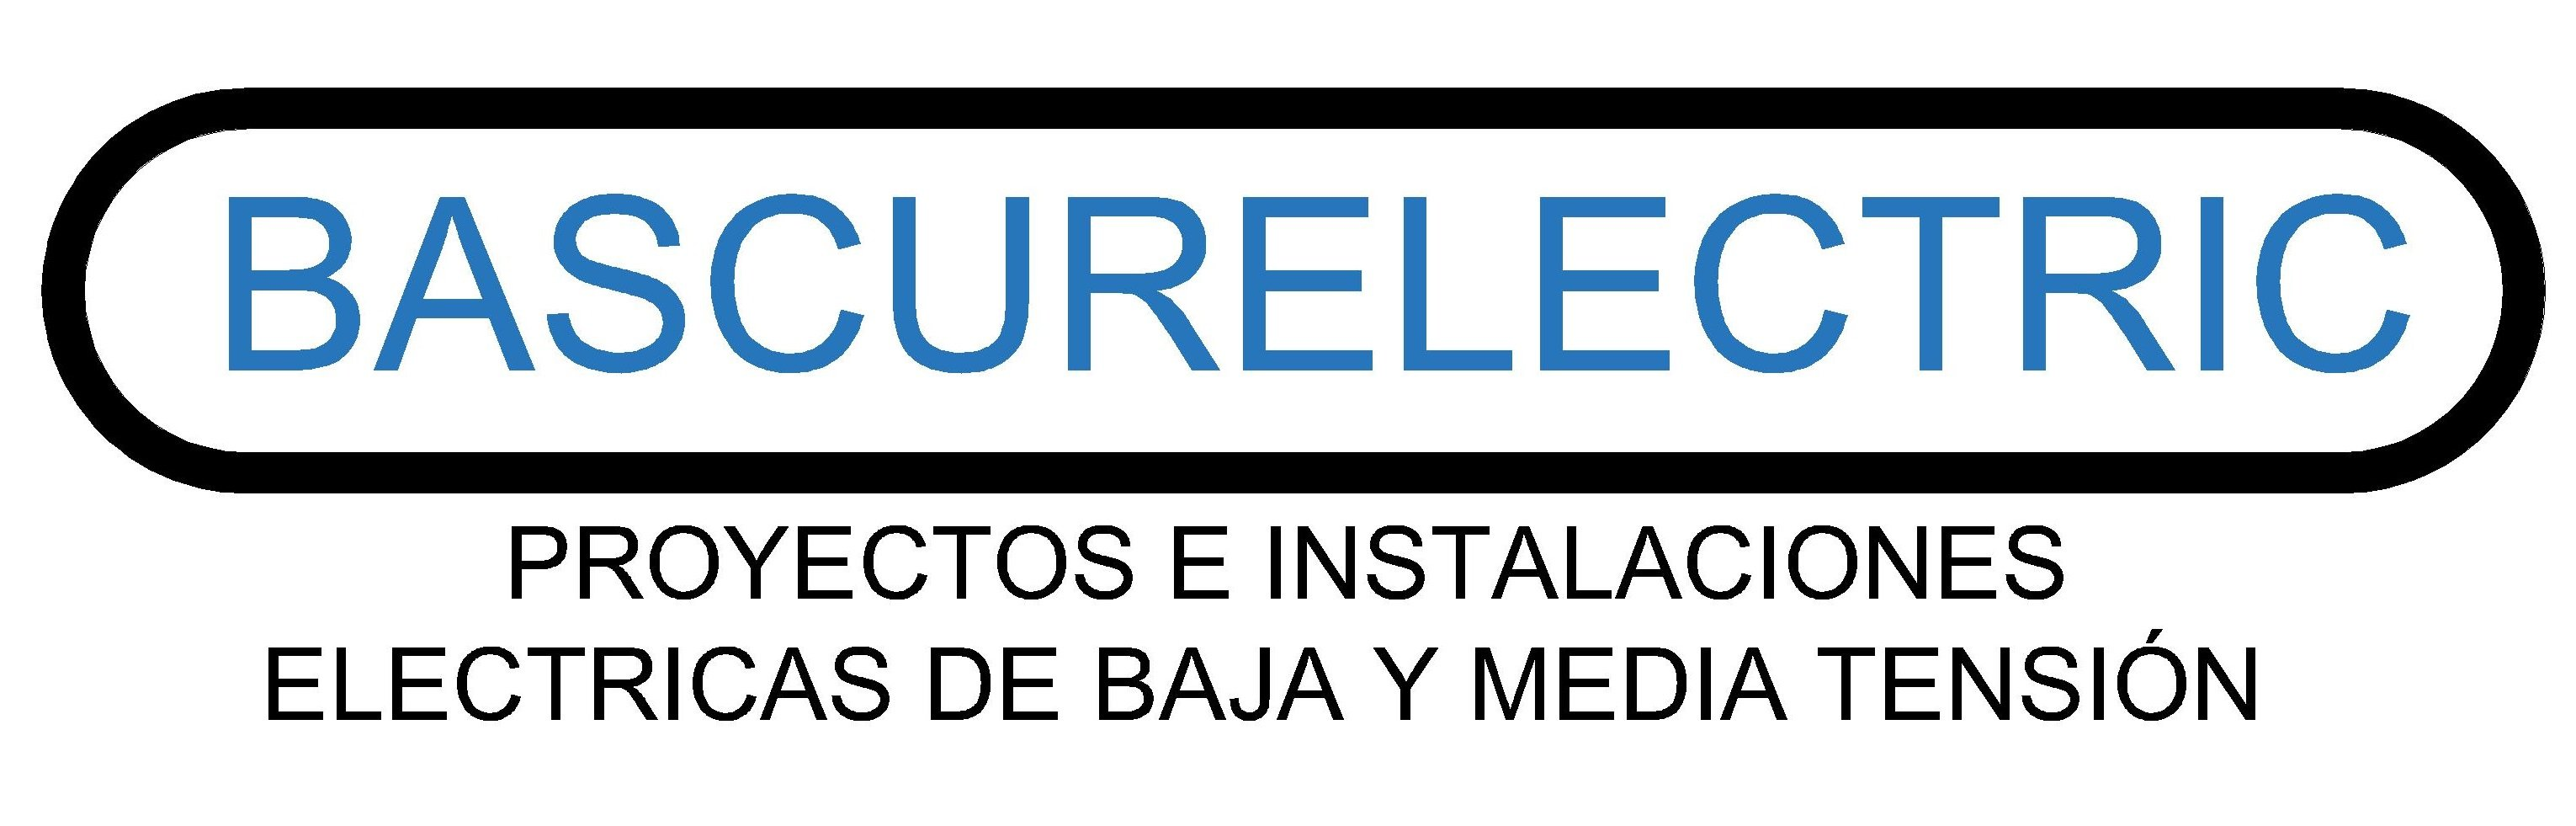 Bascurelectric